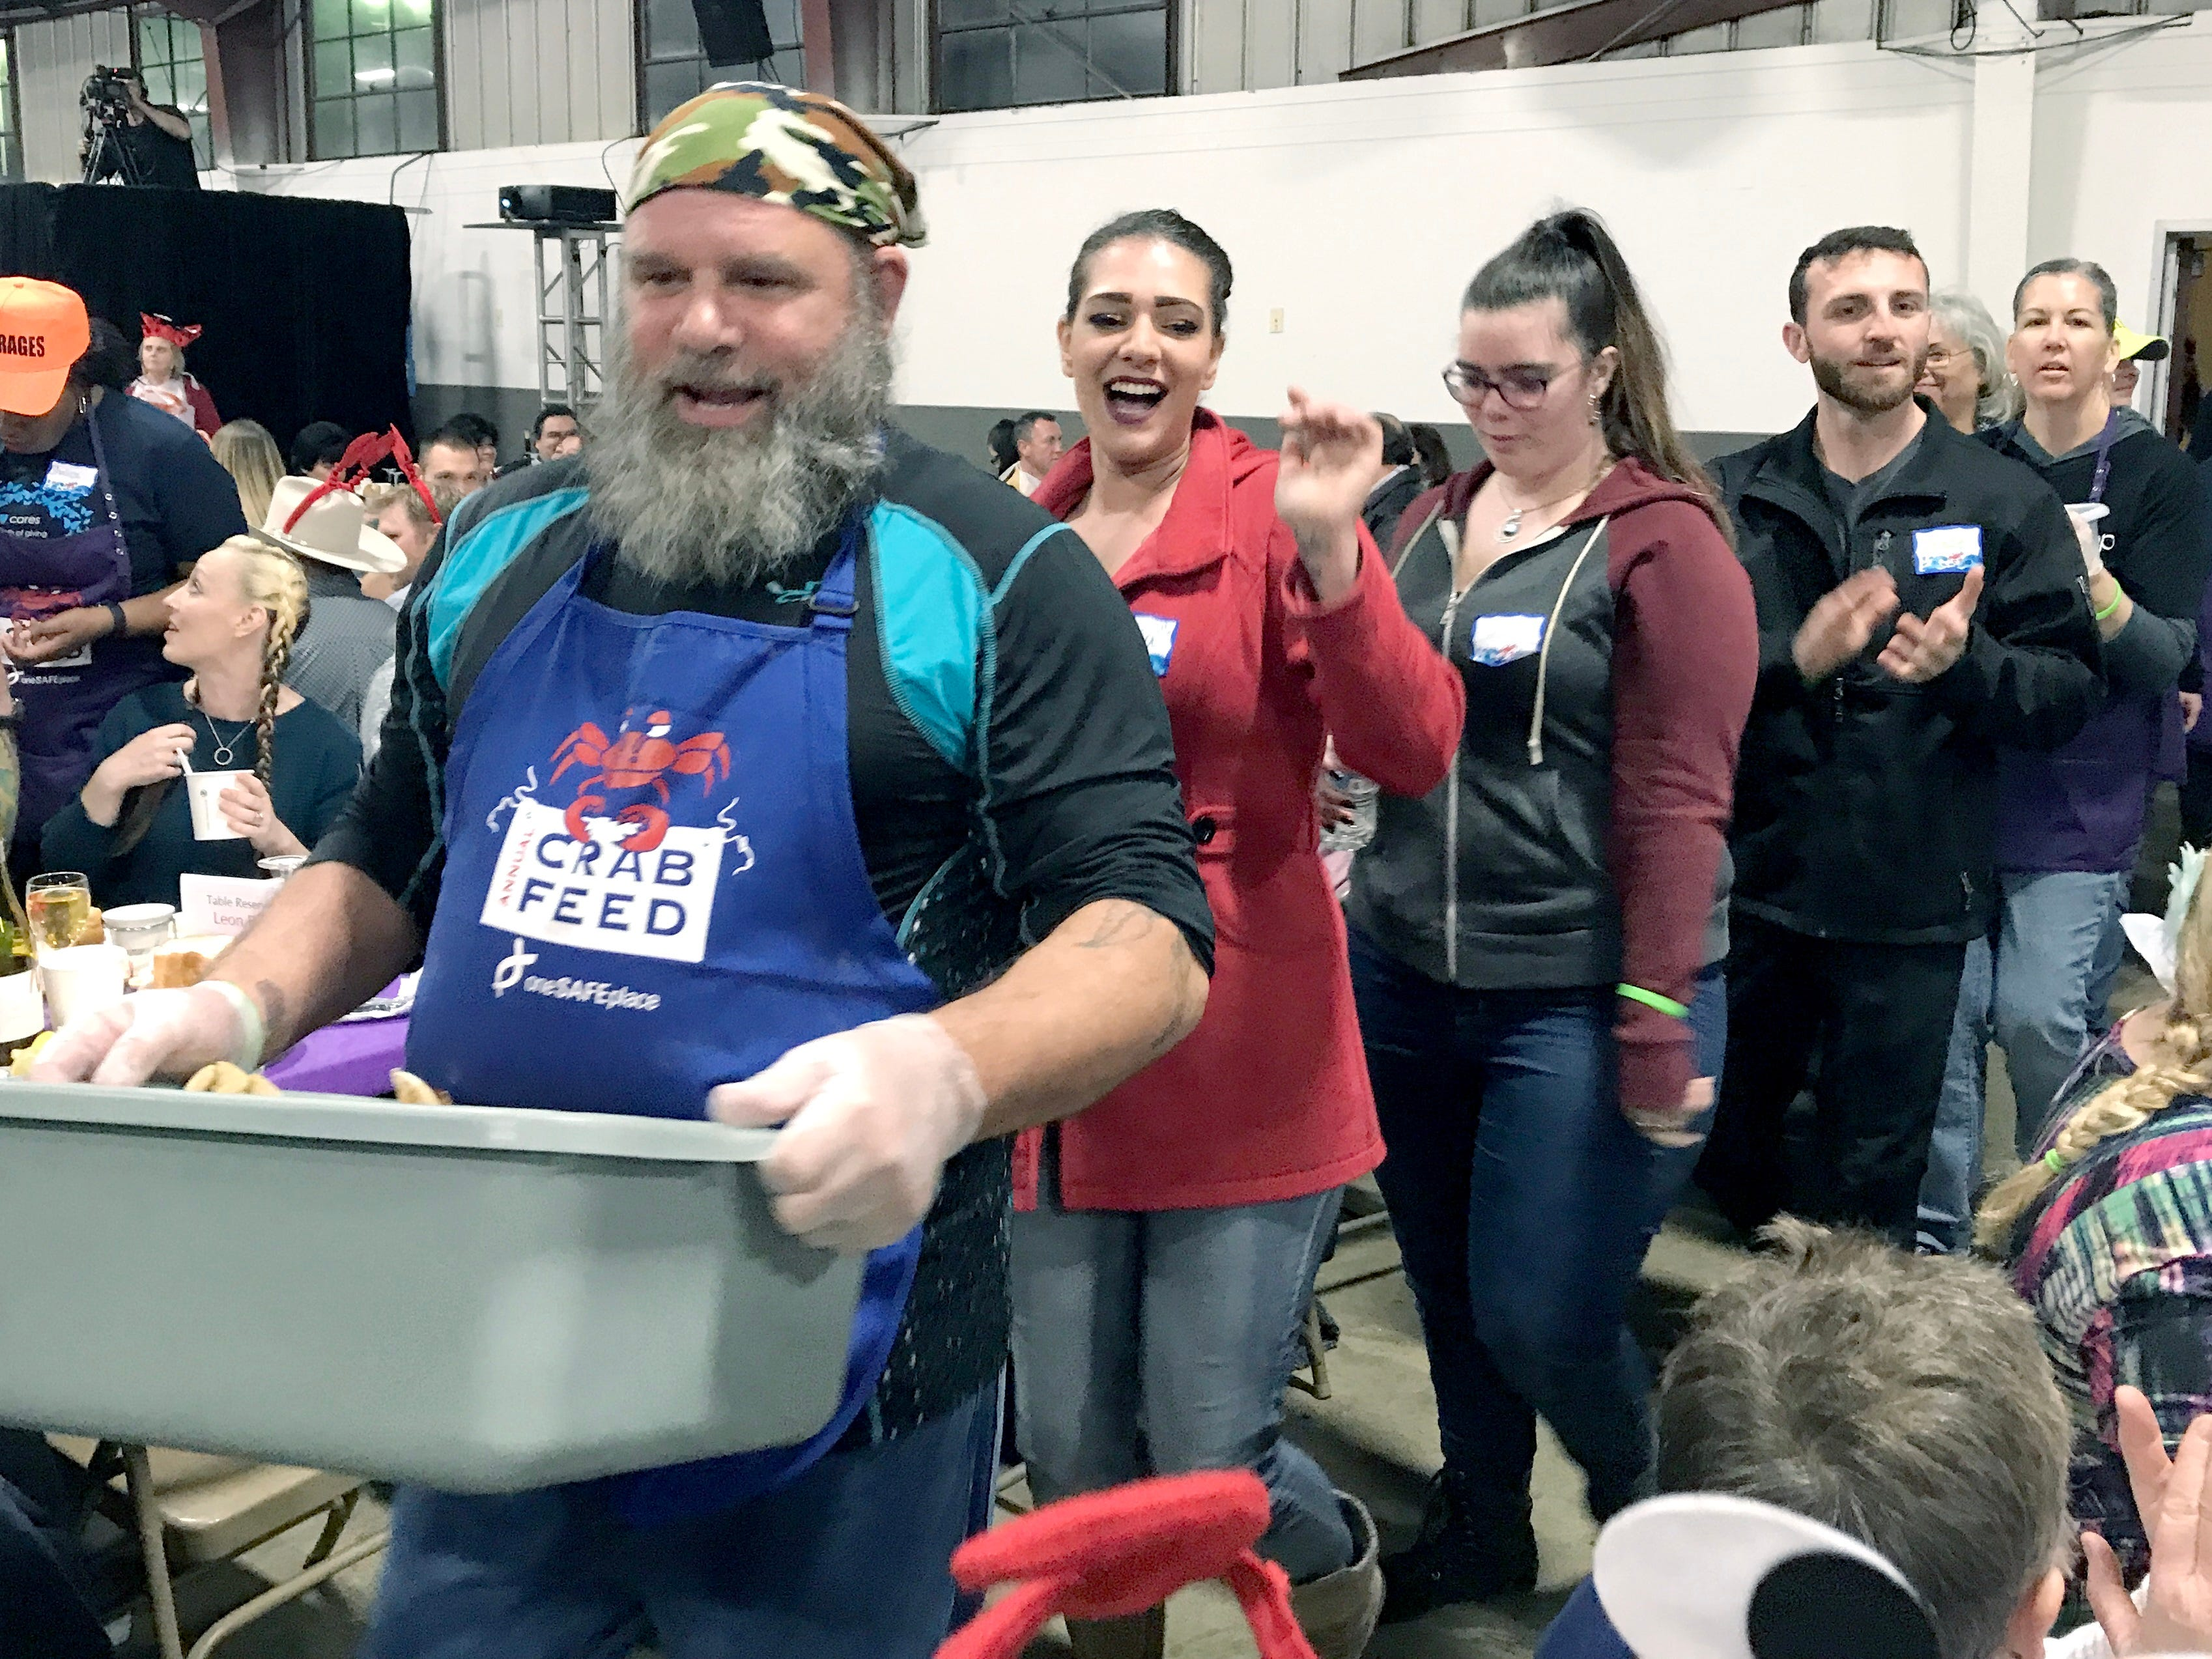 Crab servers enthusiastically enter One SAFE Place's annual crab feed Saturday, Feb. 2, 2019.